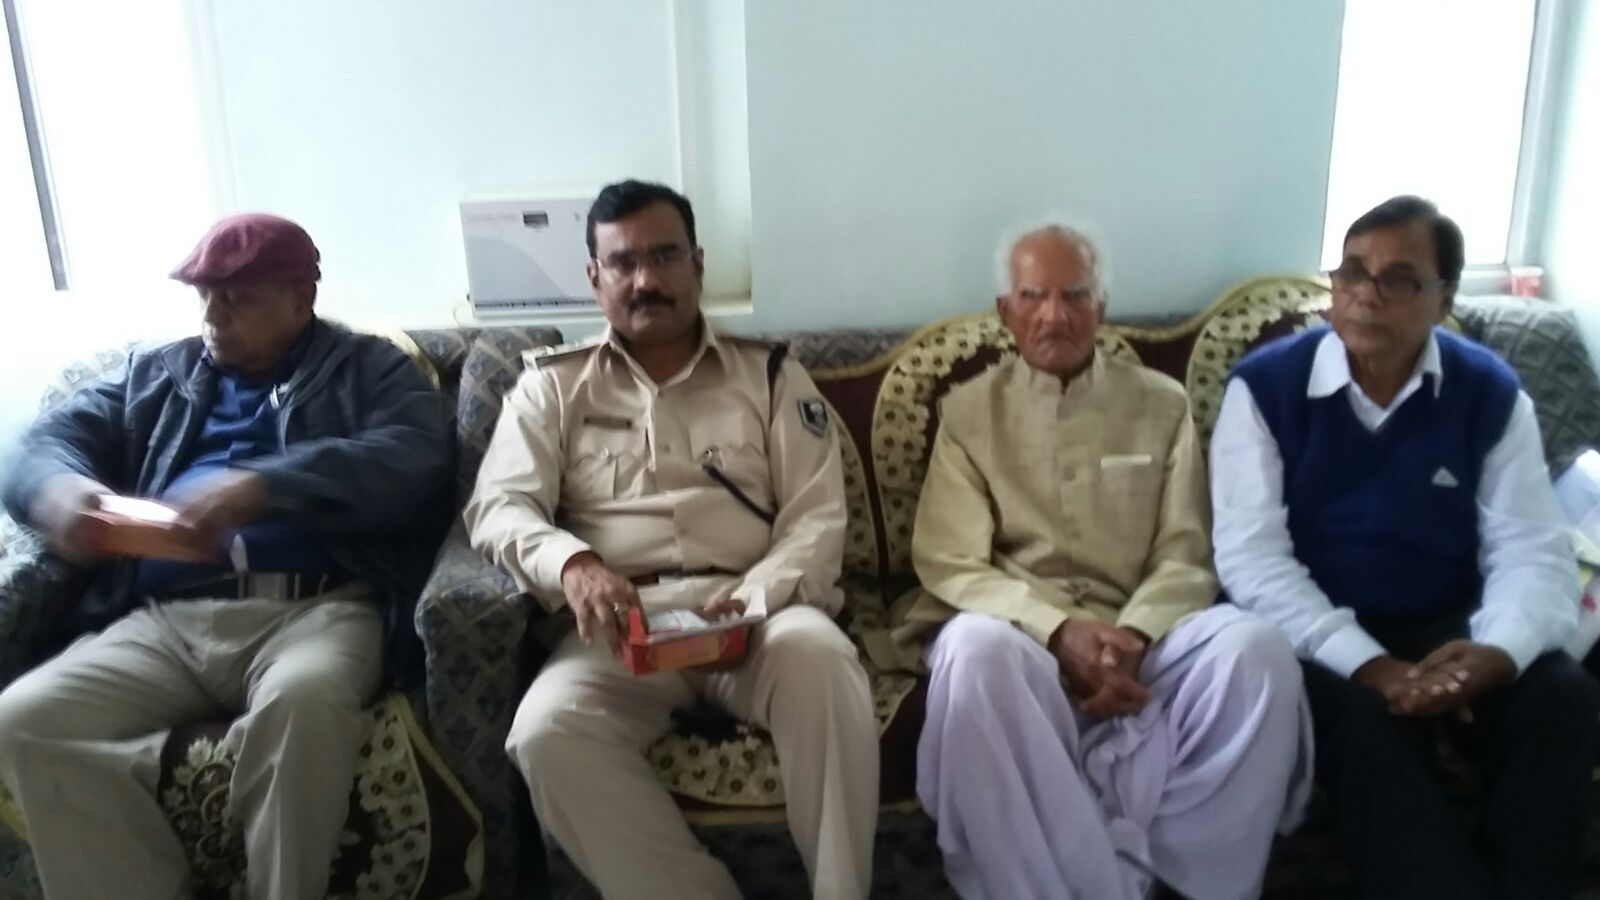 SP Vikas Kumar giving directions to Police persons from Vihar Hotel Singheshwar sitting with Pro. VC Dr. J.P.N. Jha, Sinior Professor Dr. K.N Thakur & Samaaj Sevi Dr. Madhepuri and others.